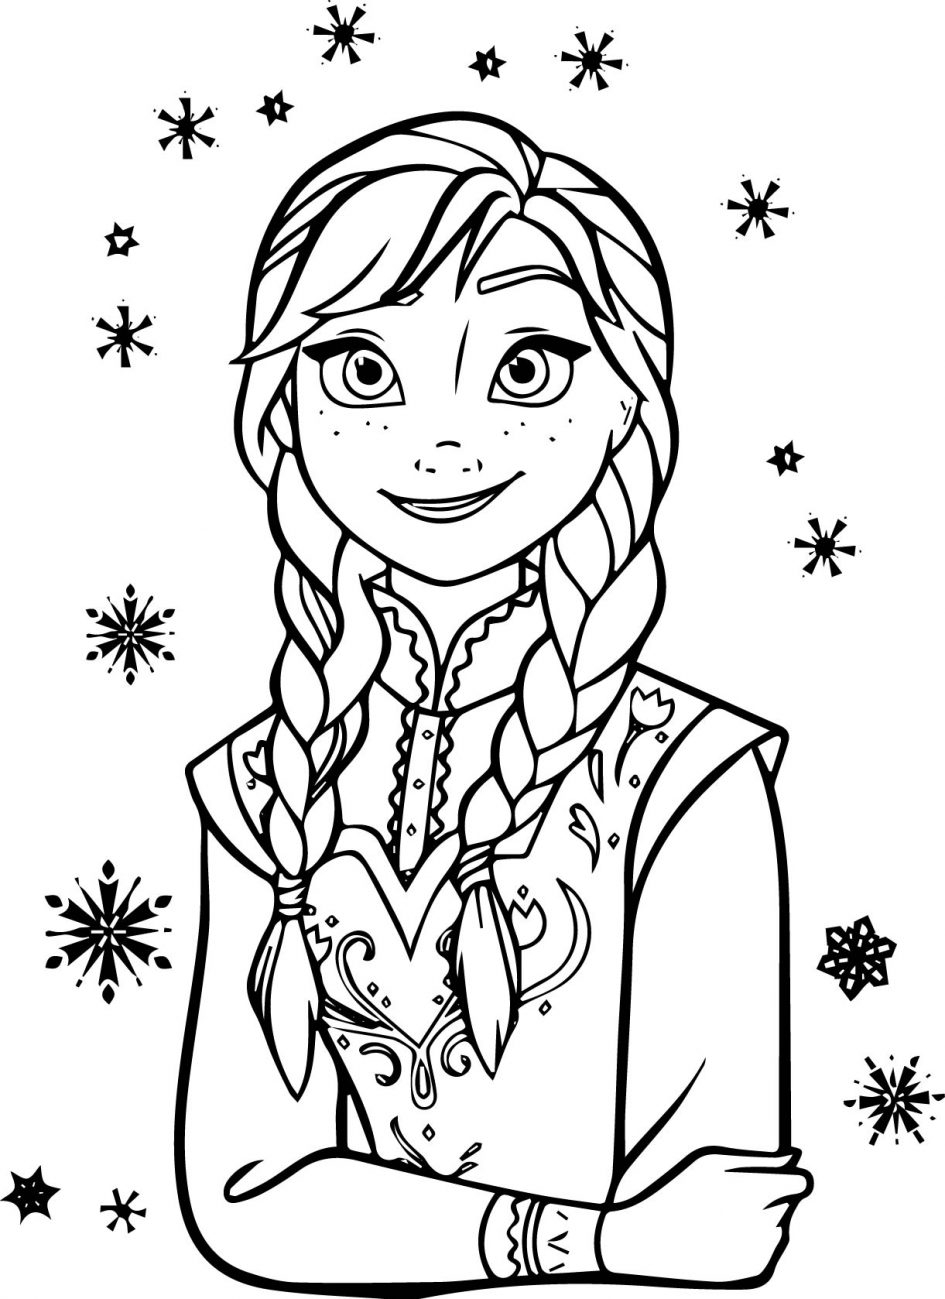 21 Anna Coloring Pages Collections | FREE COLORING PAGES - Part 2